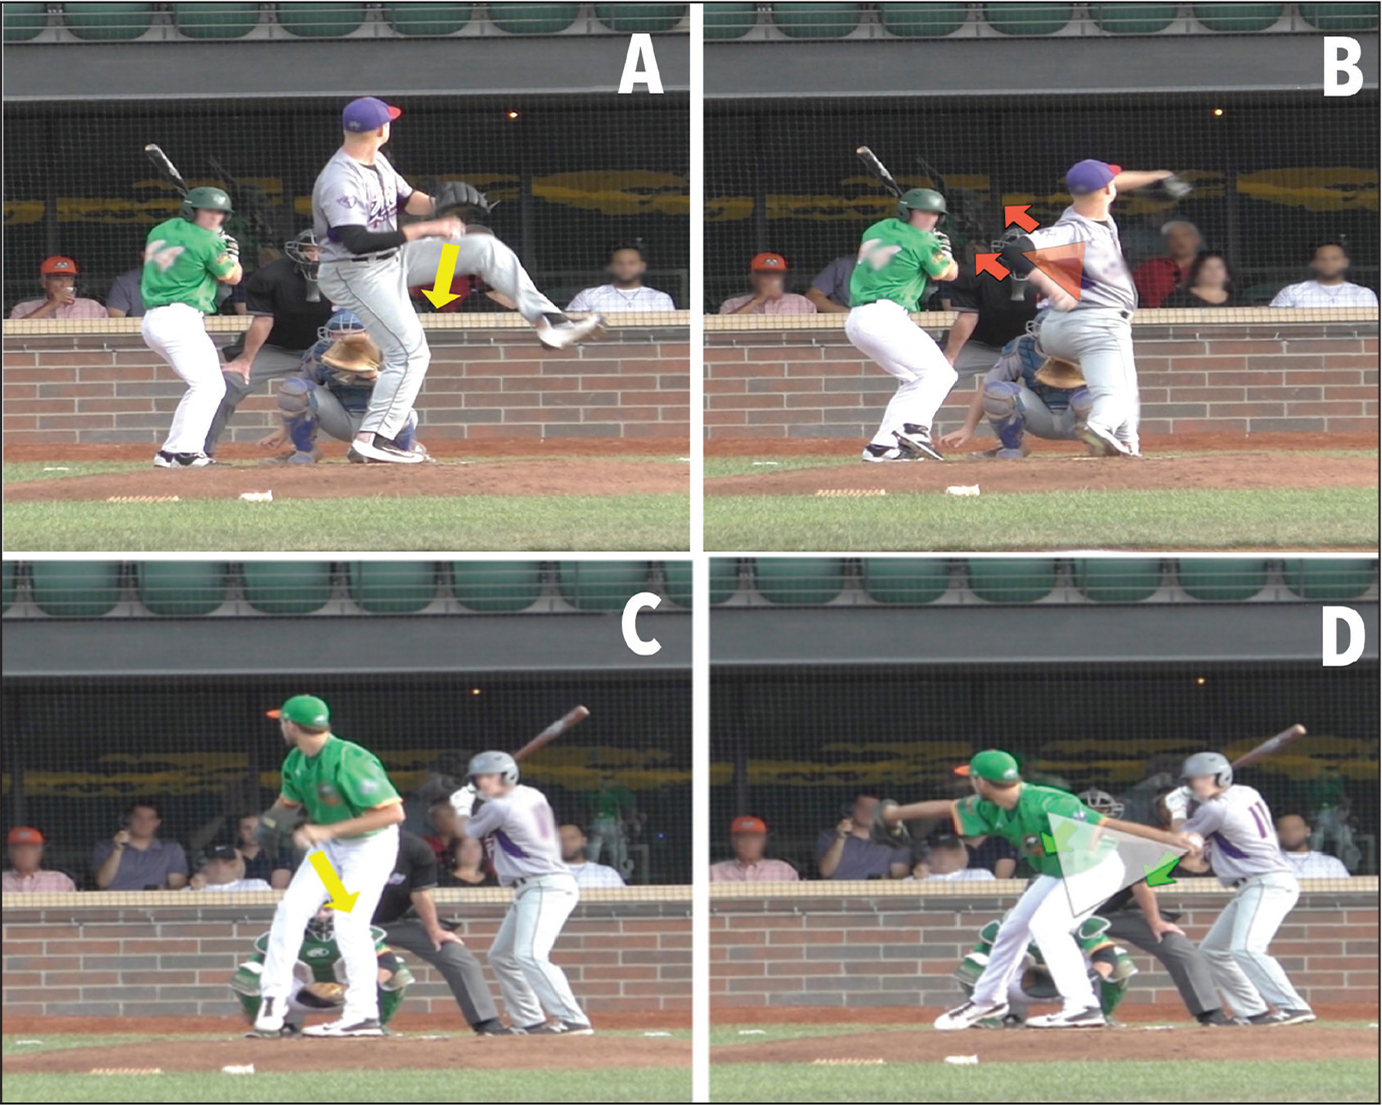 Representative example of components assessed in the arm swing category. A pitcher in the lower scoring position such that, prior to foot strike, the throwing elbow is flexed and the hand is close to the body (A, B). A pitcher in the higher scoring position with the elbow extended such that, at maximum reach-back, the hand is away from the body and in position to transition to cocked position at foot strike (C, D). Arrows represent the direction of arm swing.